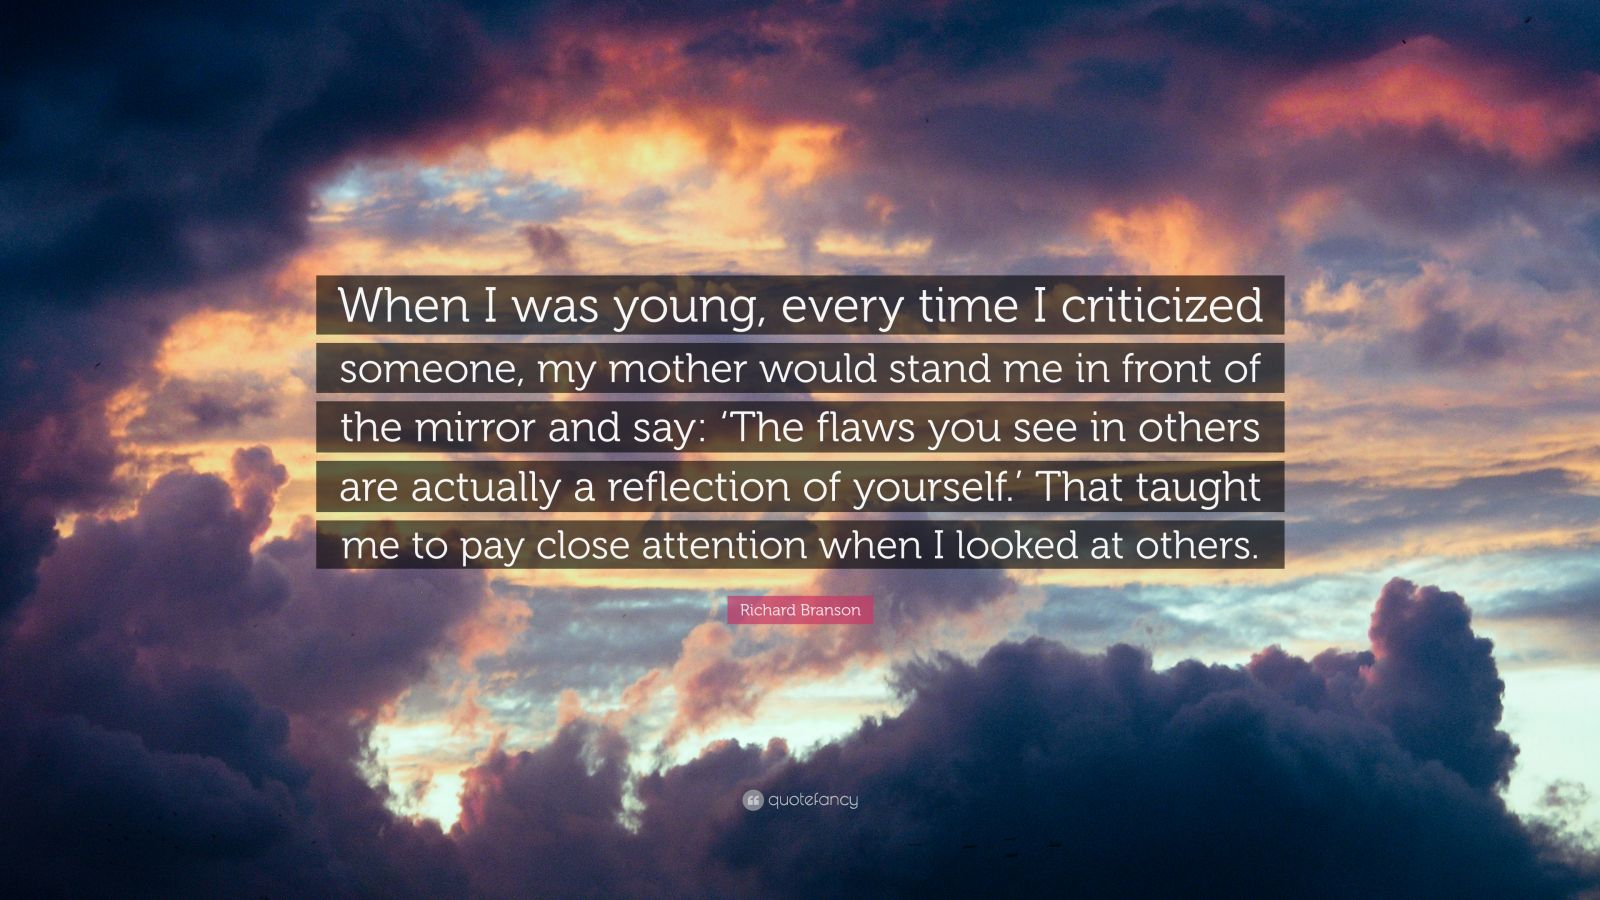 """Richard Branson Quote: """"When I was young, every time I criticized someone, my mother would stand me in front of the mirror and say: 'The flaws you see in others are actually a reflection of yourself.' That taught me to pay close attention when I looked at others."""""""